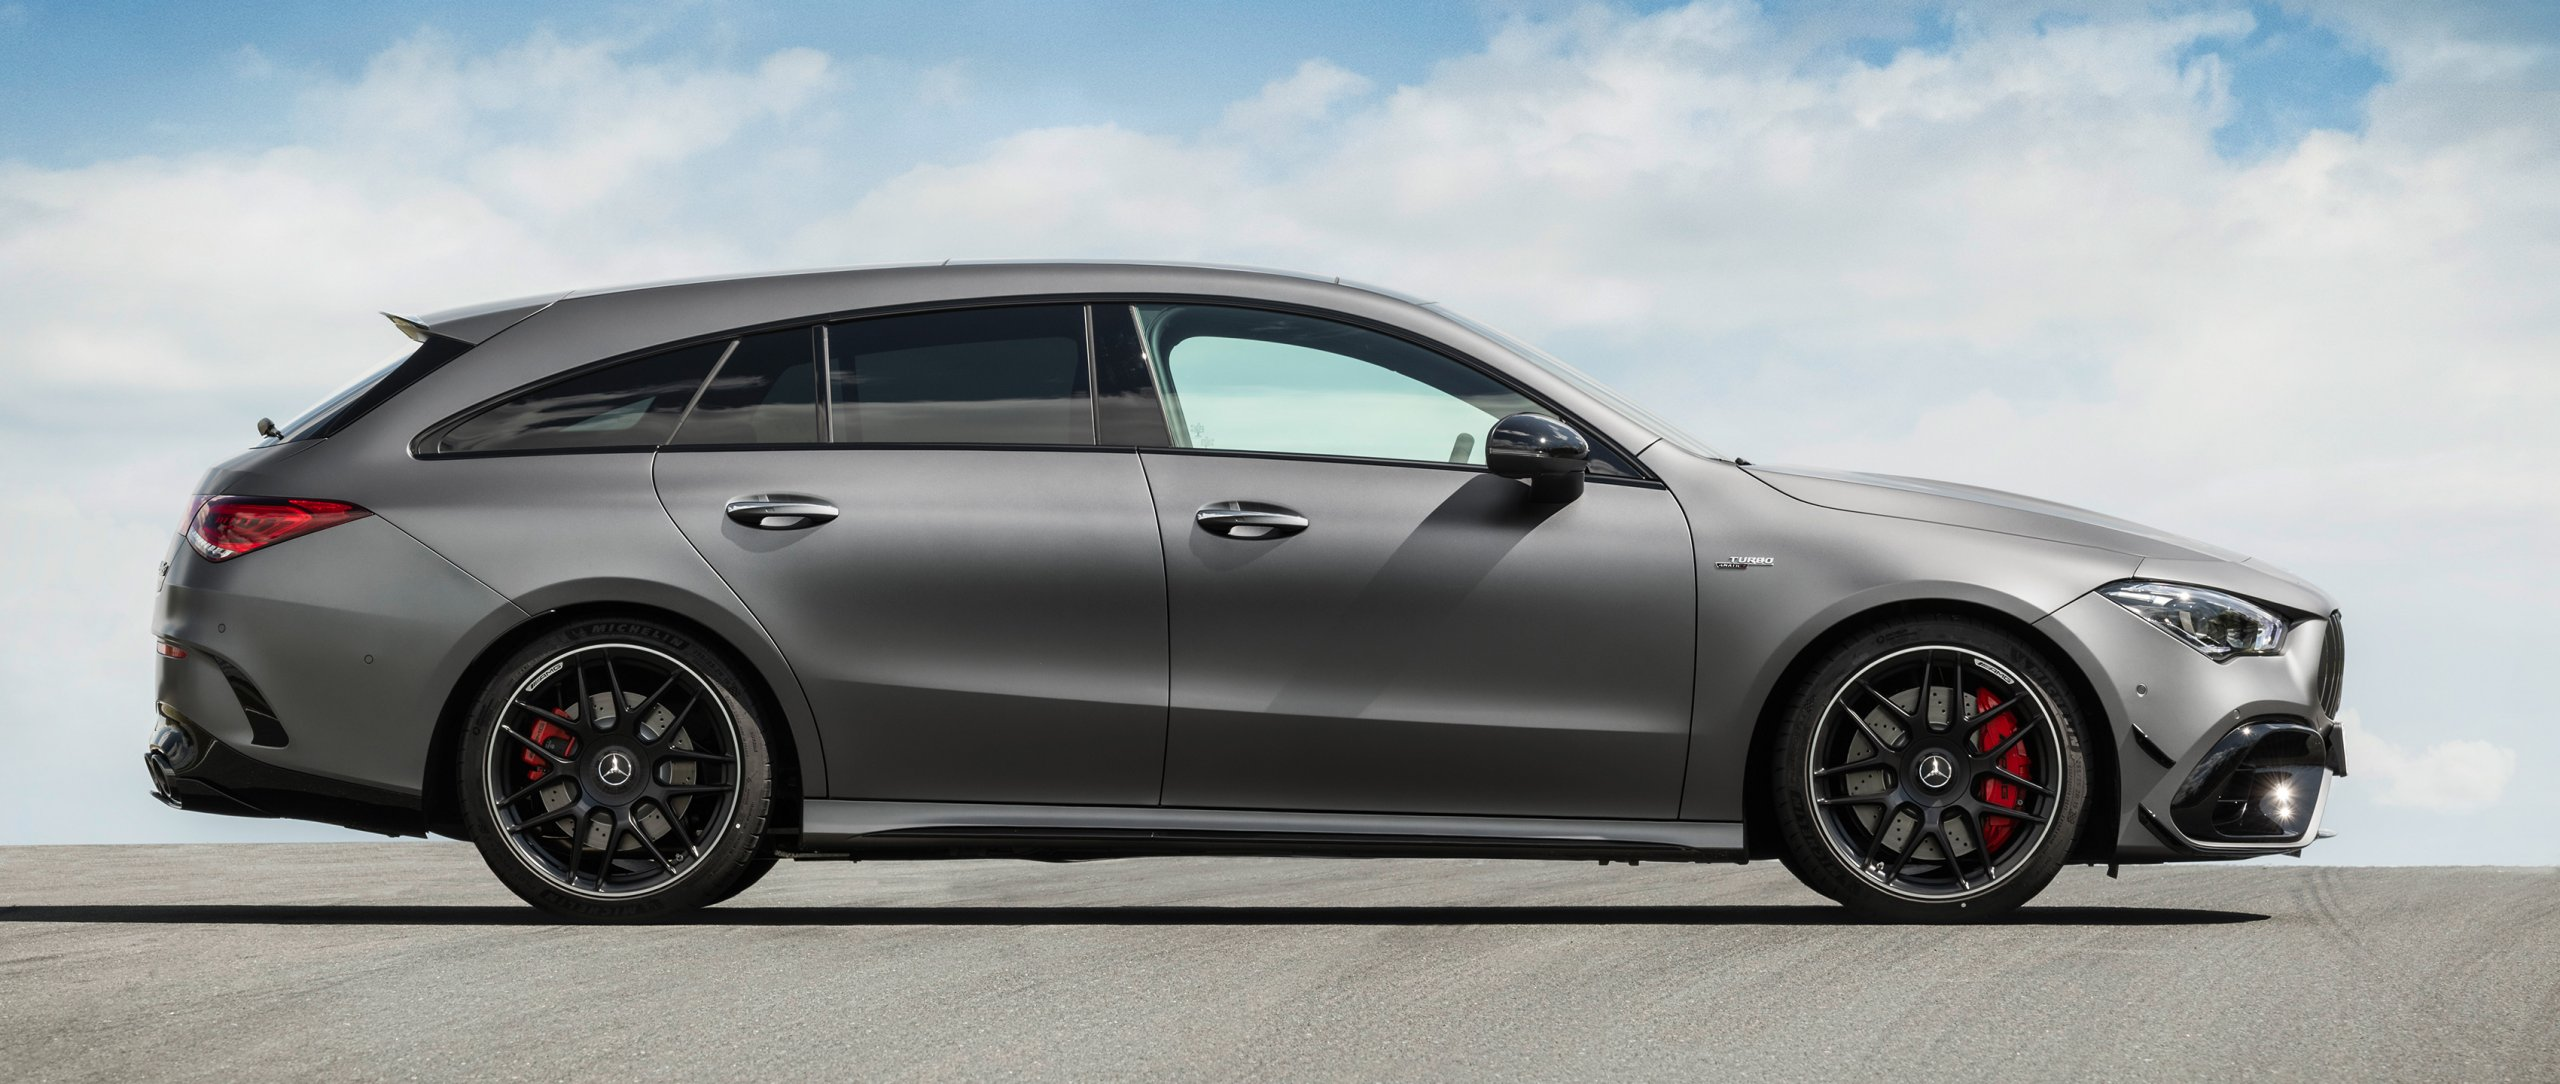 Mercedes-AMG CLA 45 S 4MATIC+ Shooting Brake (X 118) (2020) in designo mountain grey magno in side view